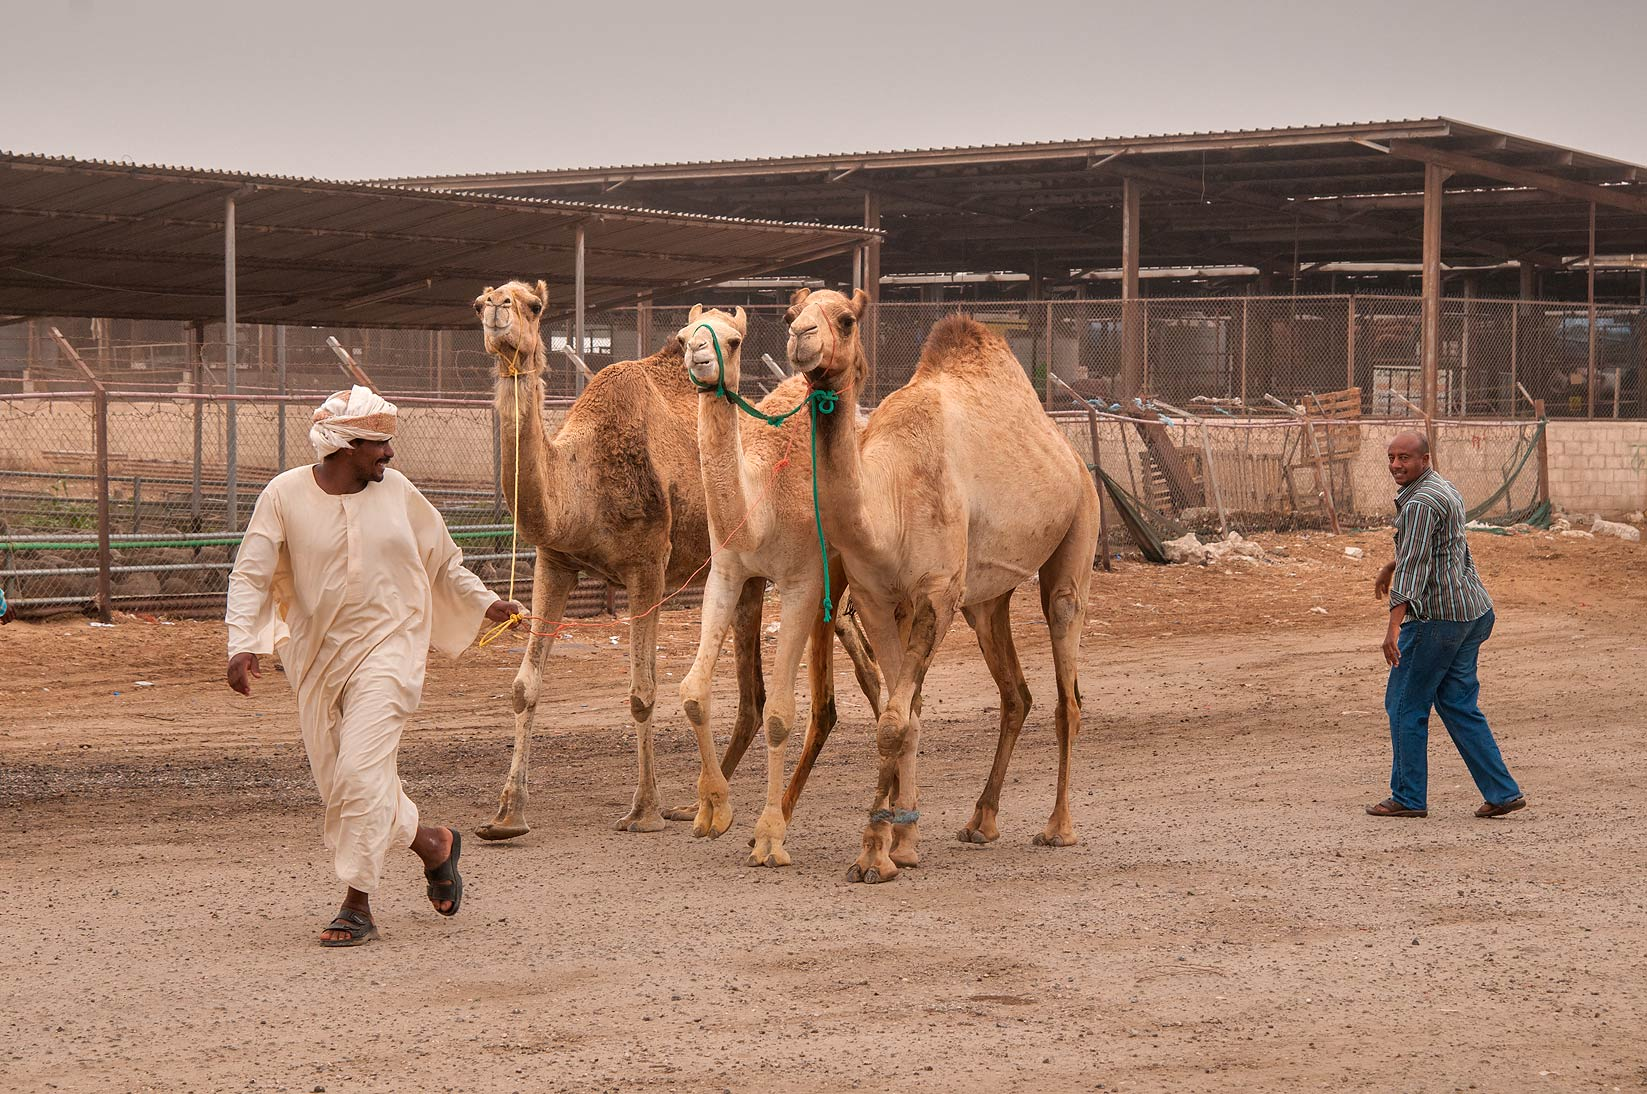 A person holding three camels in livestock market, Abu Hamour area. Doha, Qatar